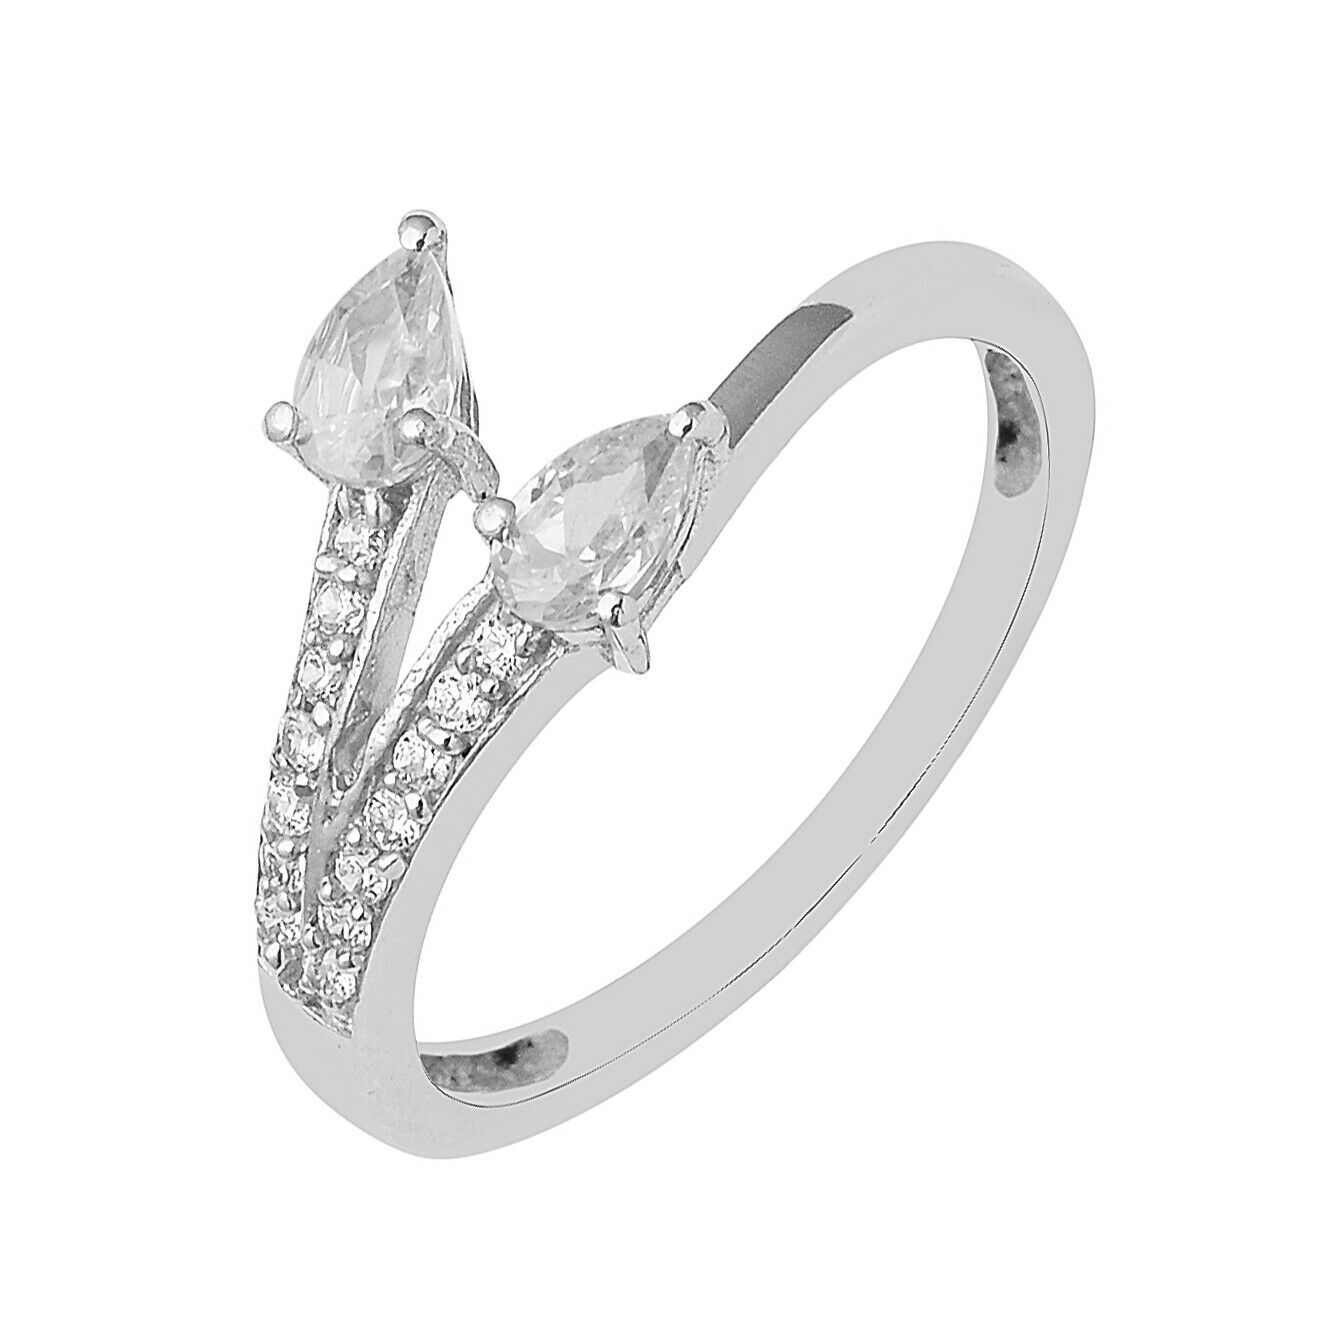 Primary image for Pear Cut Natural Cubic Zircon Gemstone 925 Sterling Silver Women Wedding Ring